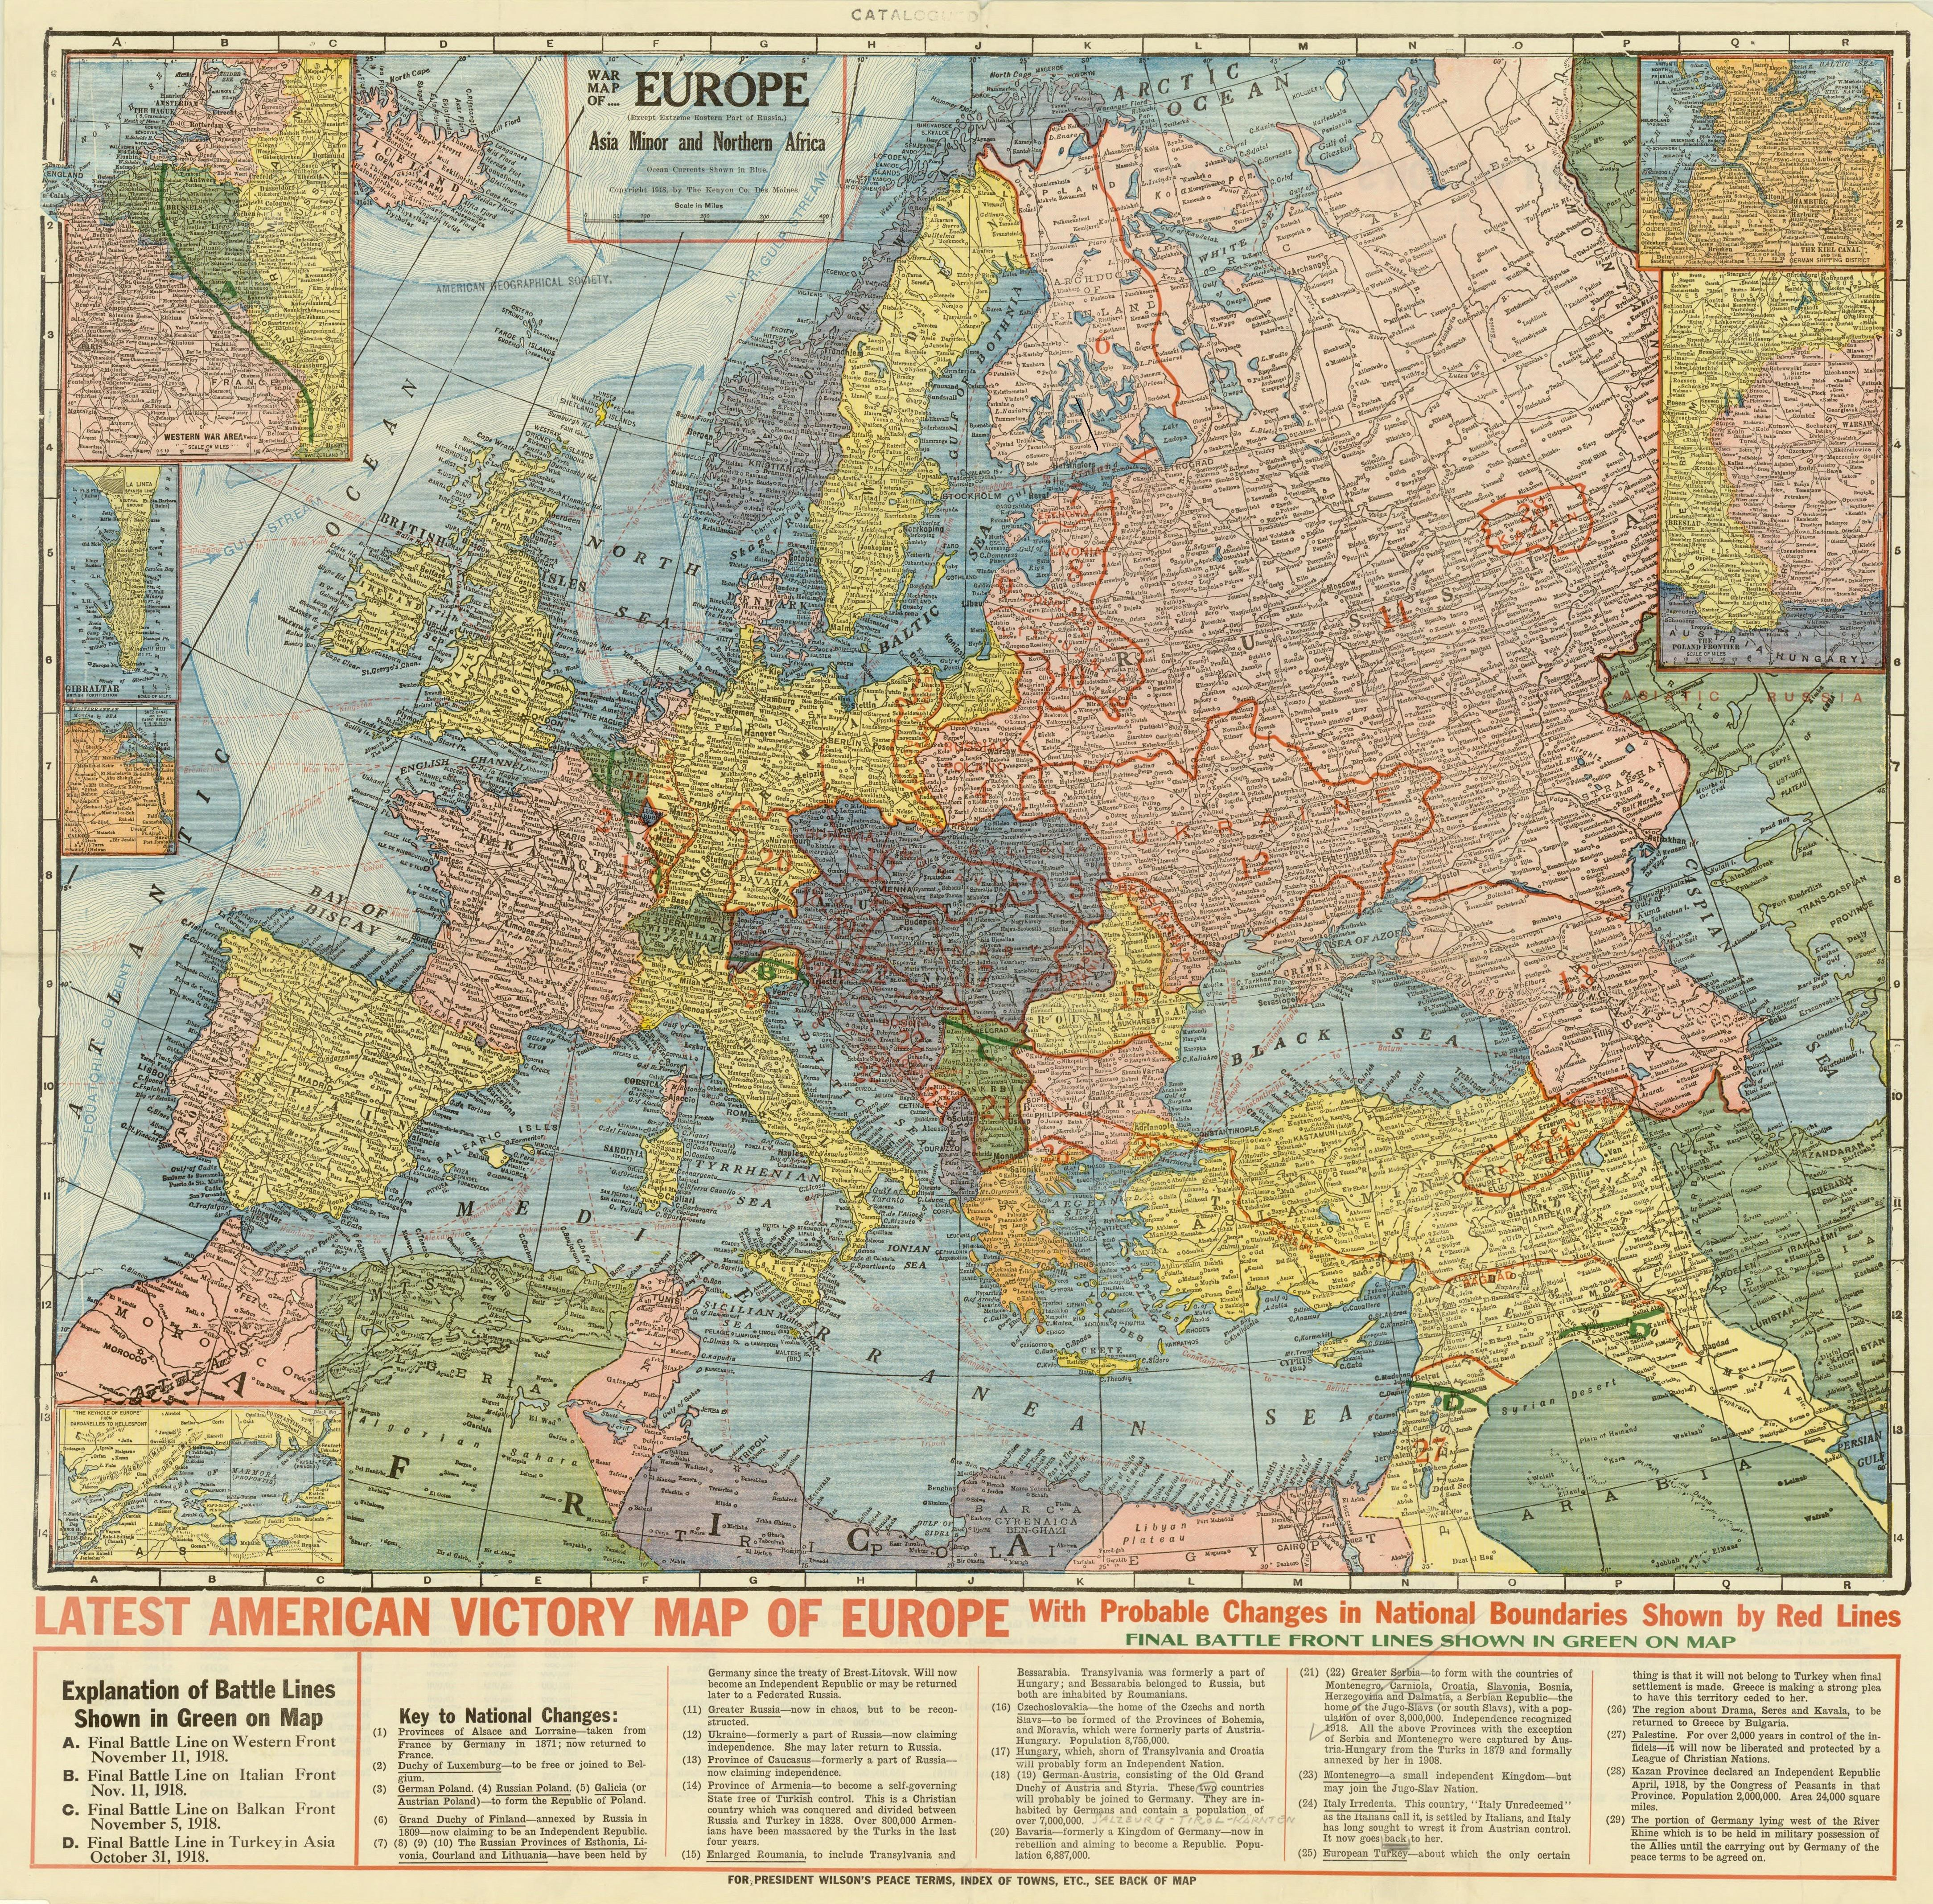 American Victory Map Of Europe Made After The End Of Ww 1 Showing Roughly What Should Be Borders Of New States Vivid Maps